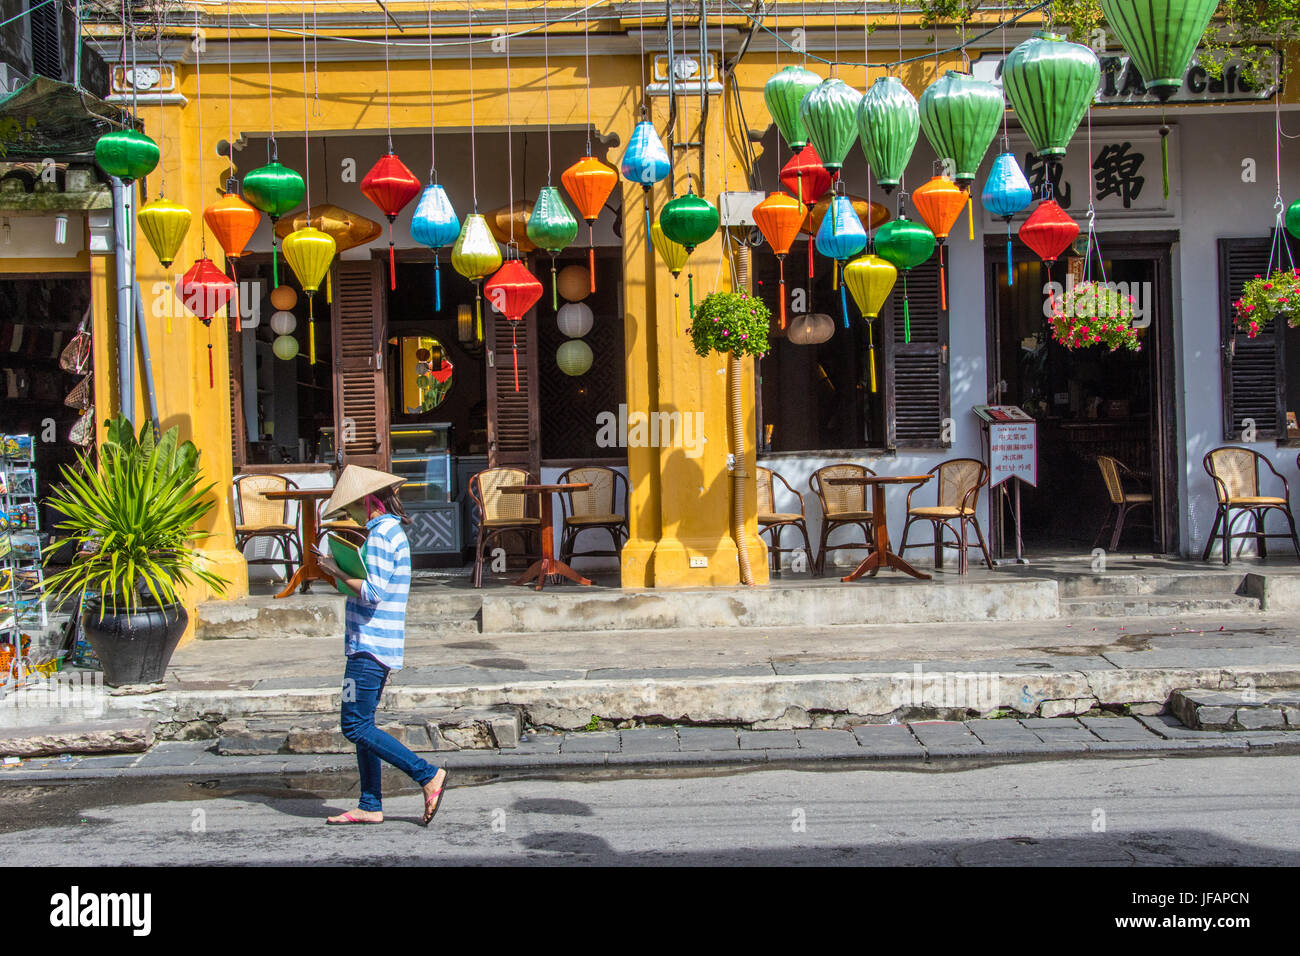 Traditional lanterns in Hoi An, Vietnam - Stock Image